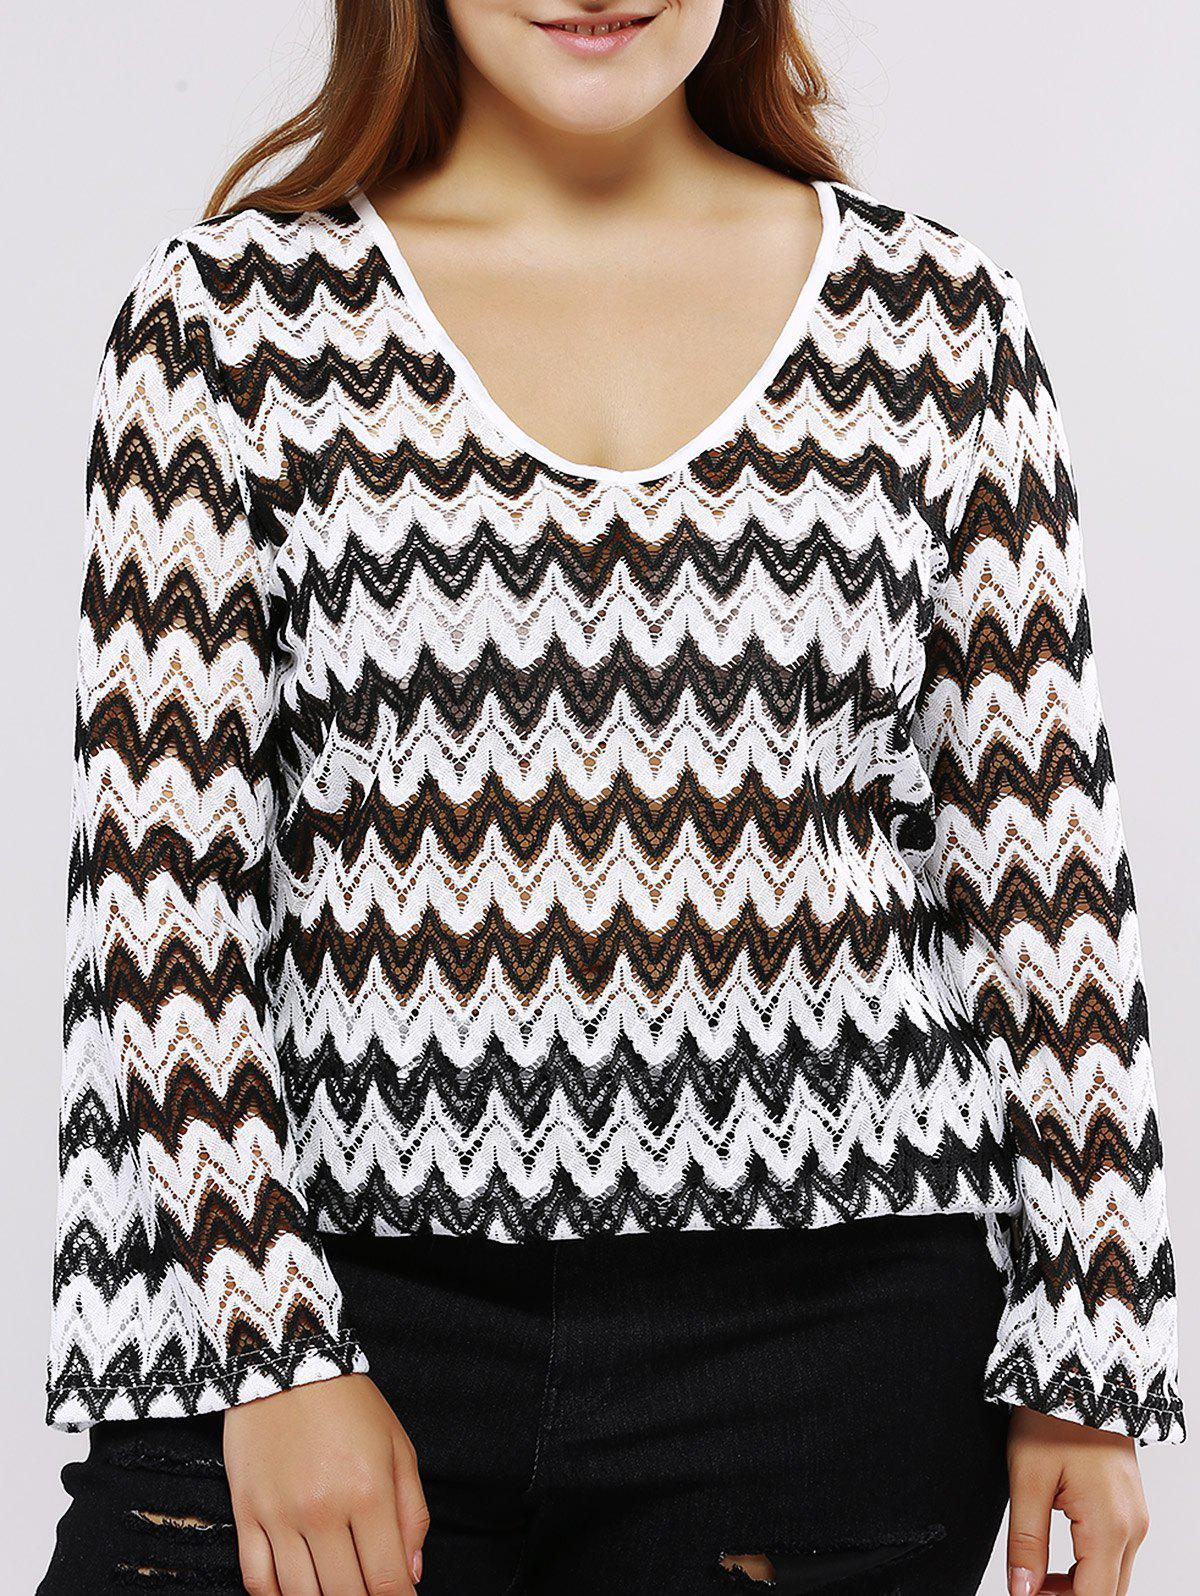 Chic Oversized Casual Low Cut Chevron Pattern Blouse